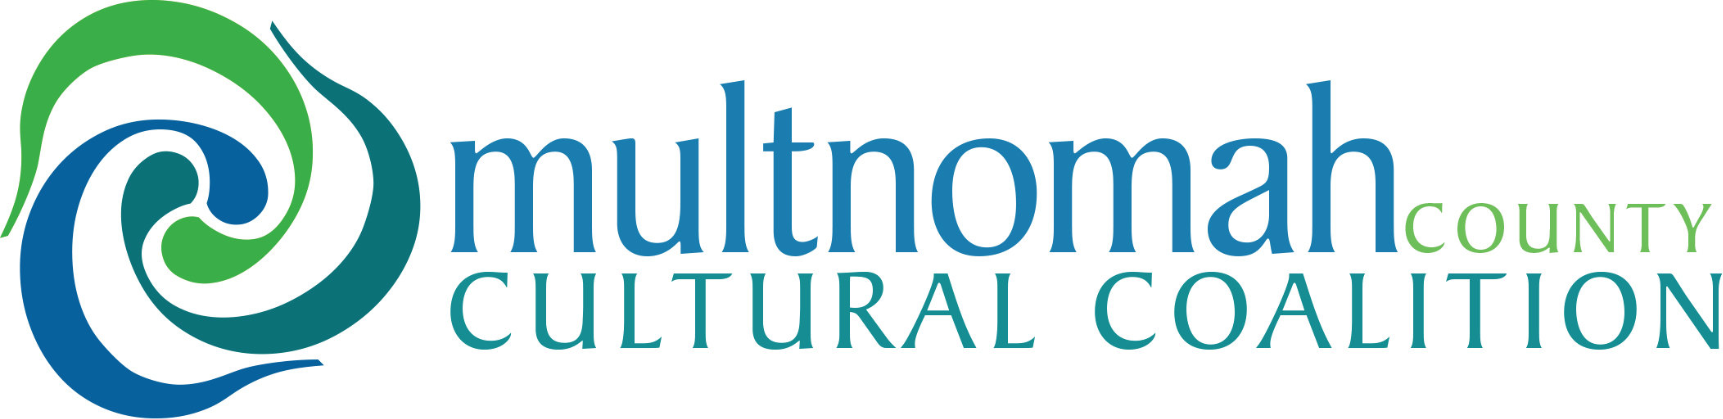 Multnomah County Cultural Coalition Logo